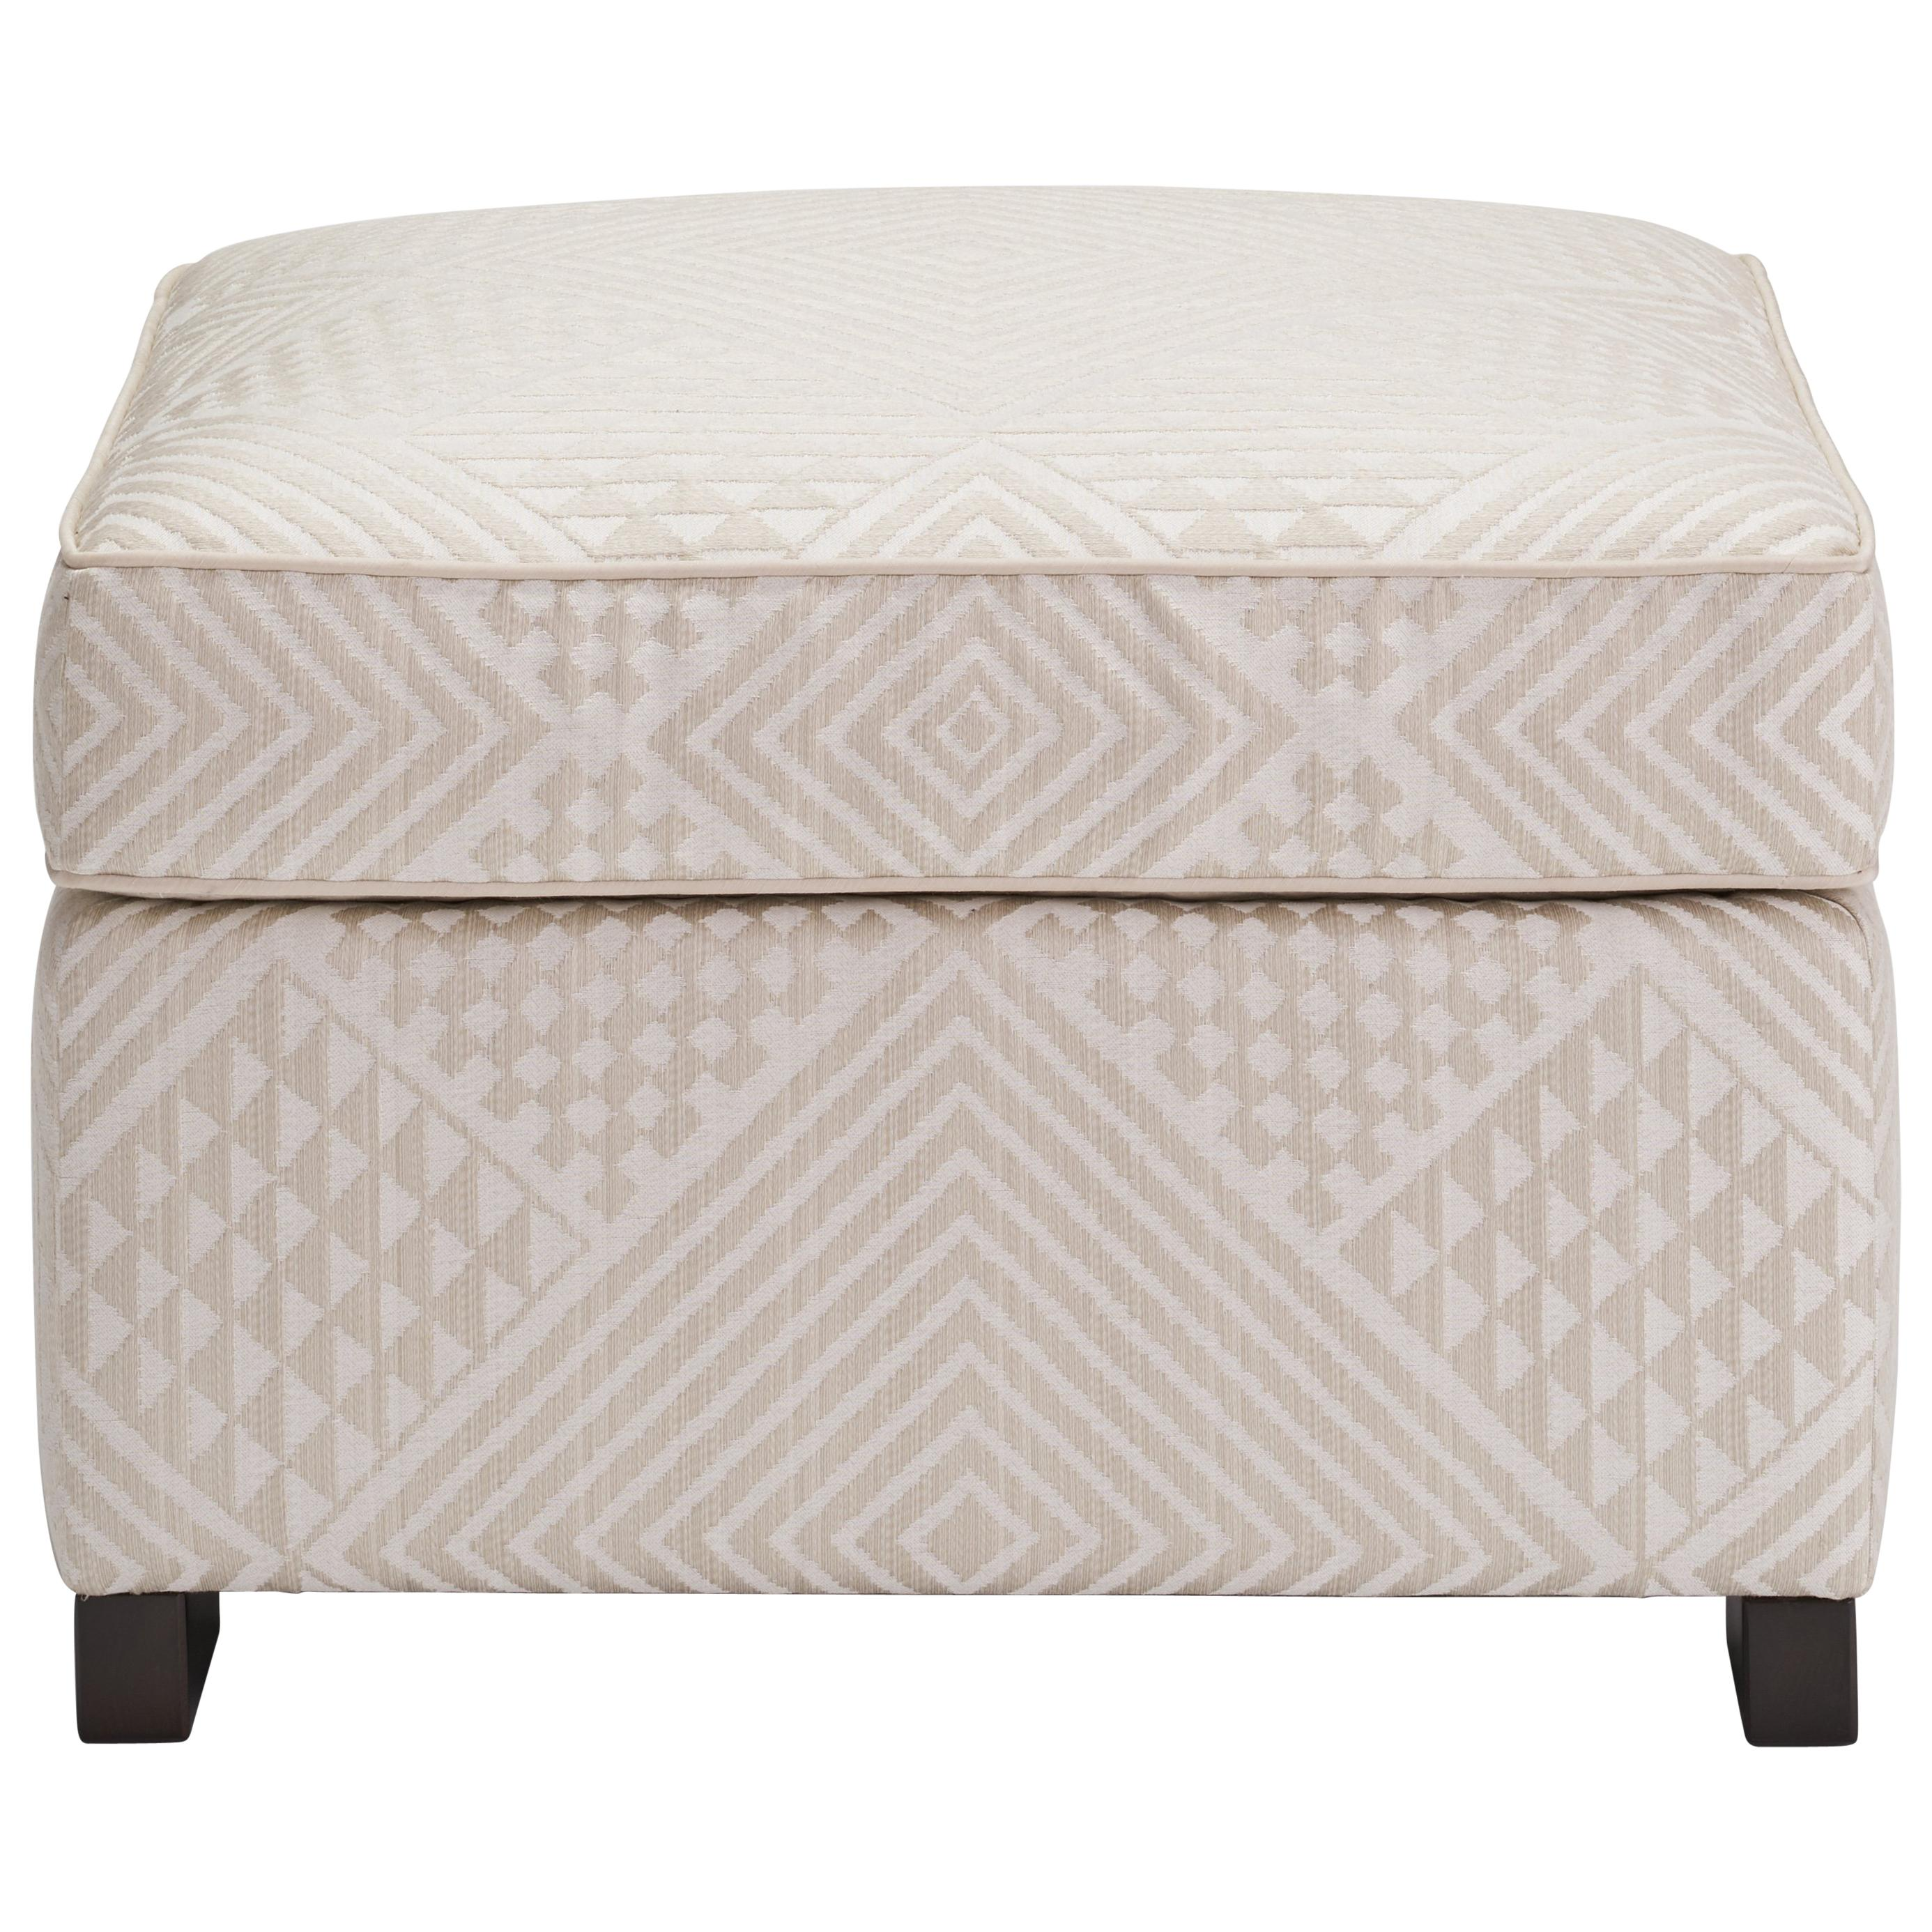 Ottoman Upholstery Donghia Woodbridge Ottoman In Cream Cotton Upholstery With Geometric Pattern